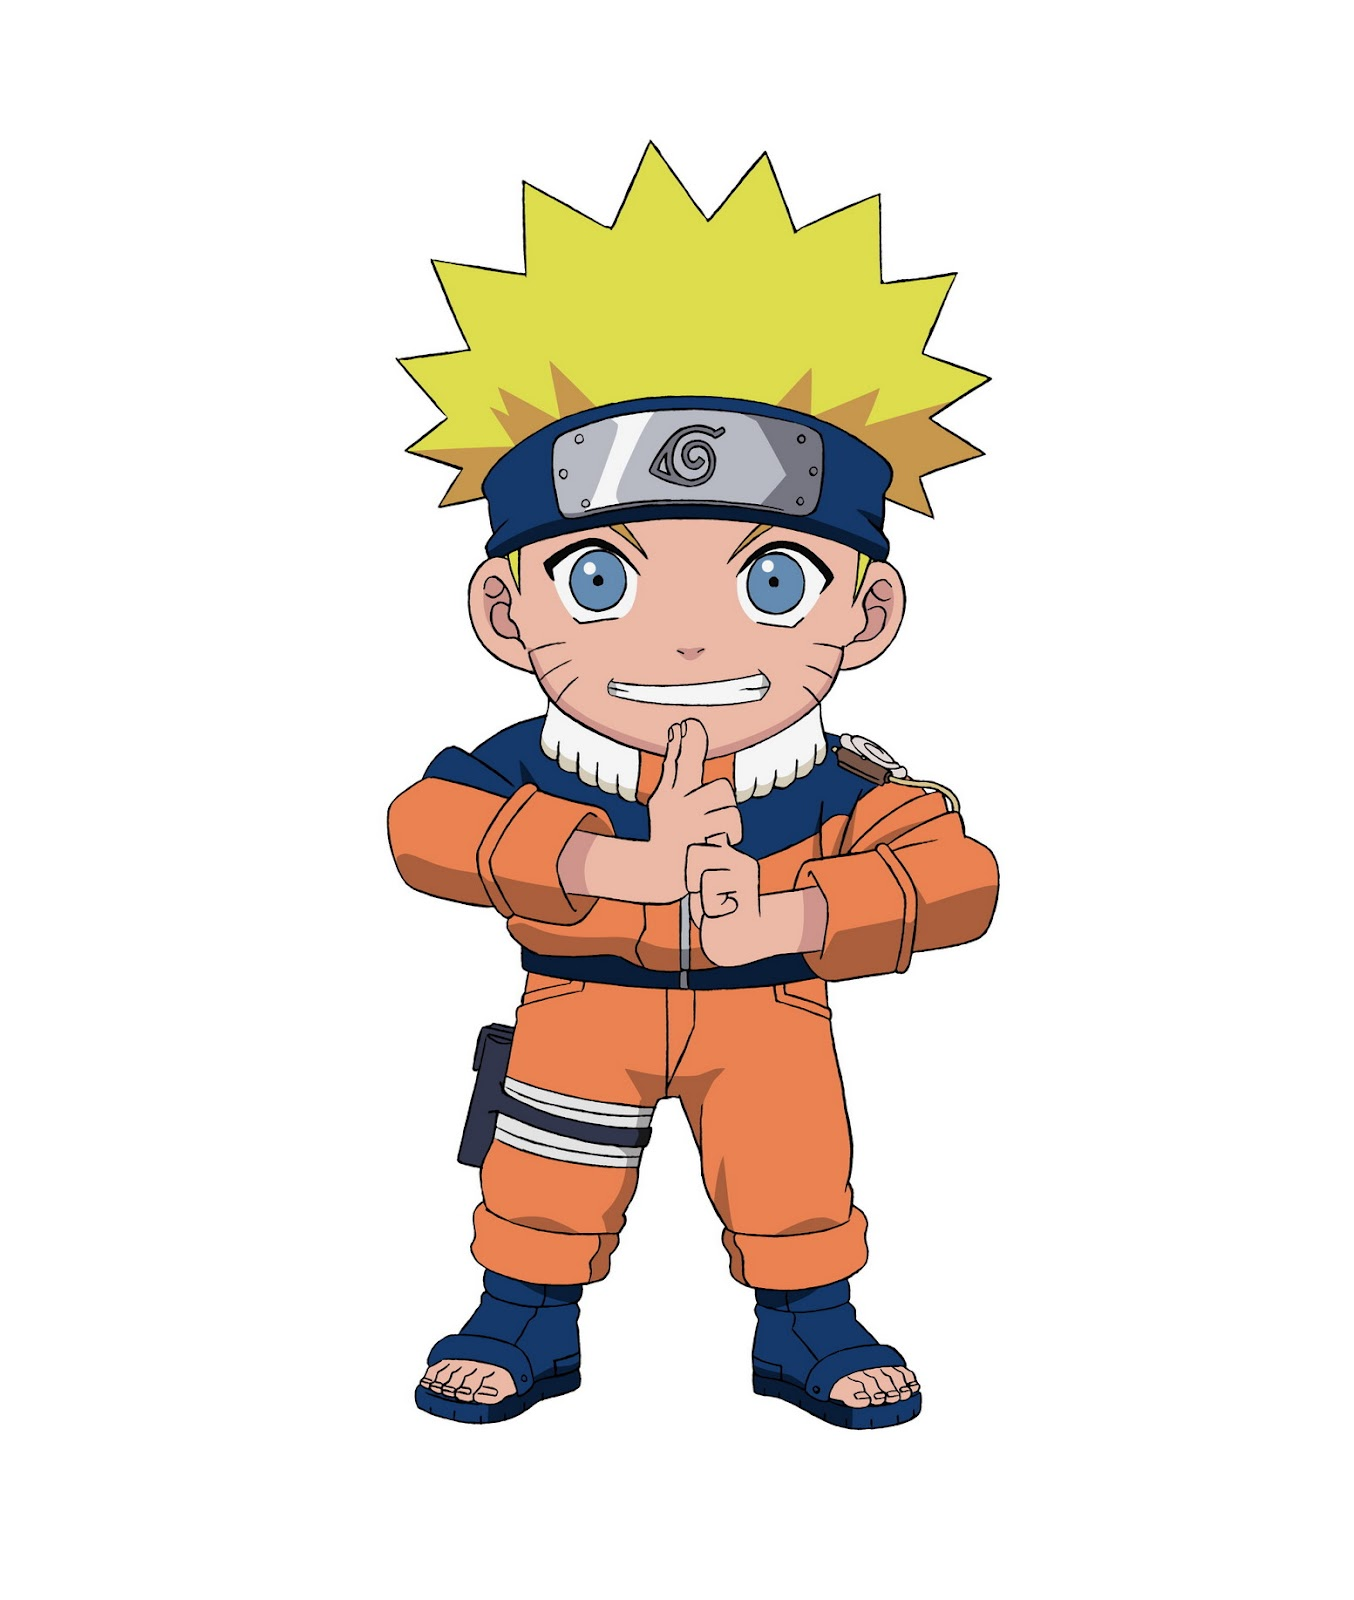 Download 101+ Wallpaper Lucu Naruto Gratis Terbaru